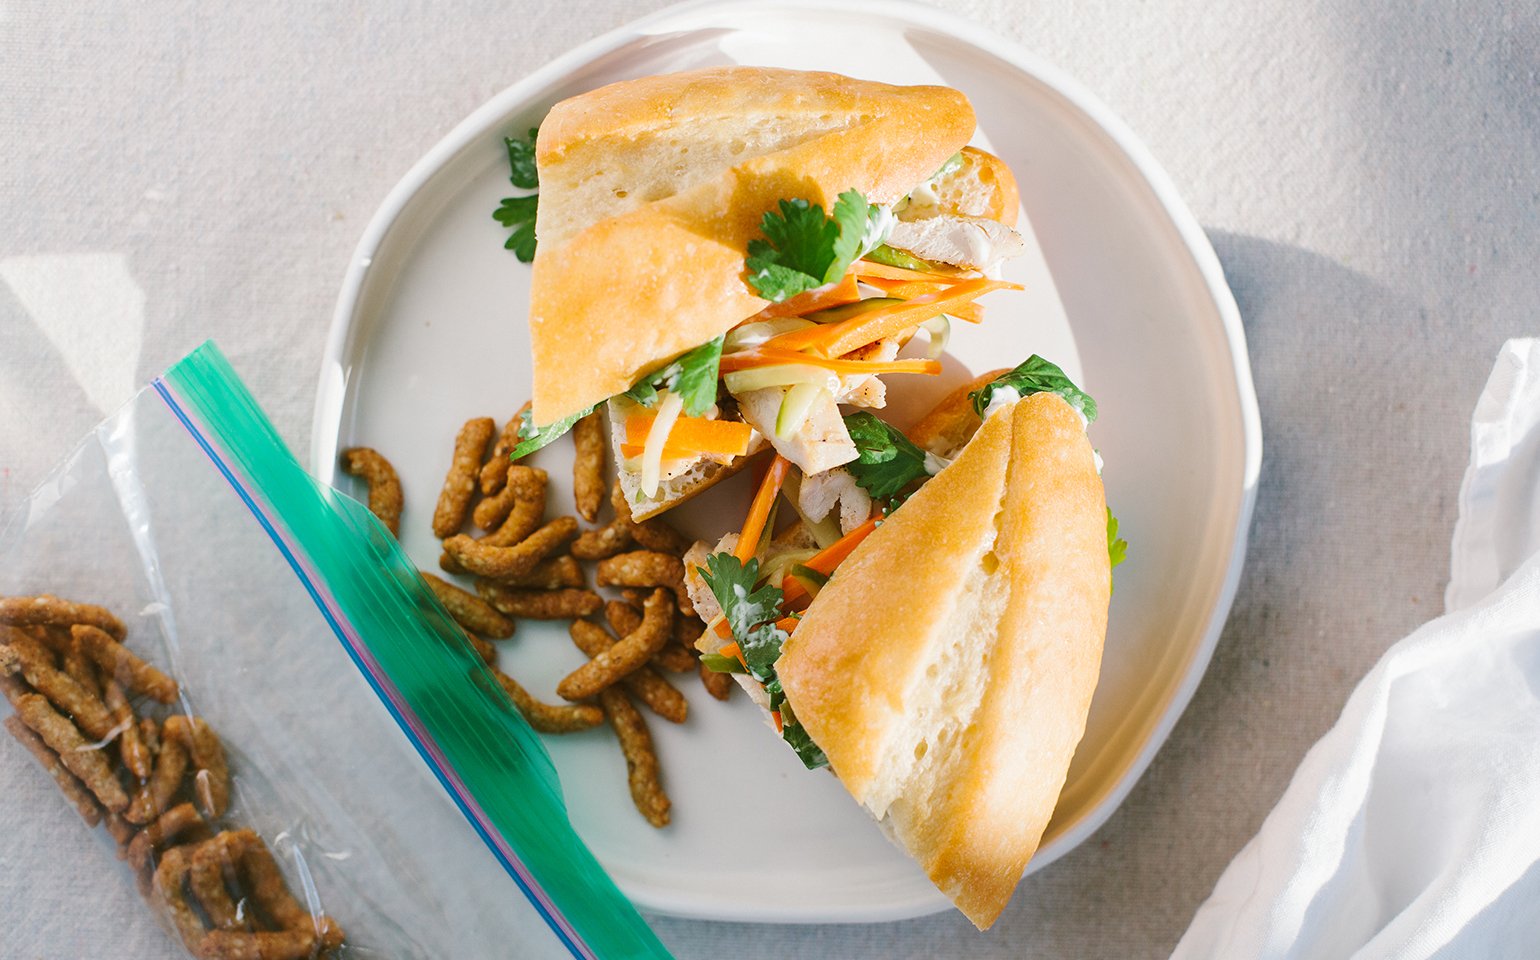 Ziploc 174 Grilled Chicken Banh Mi With Pickled Jalapeno